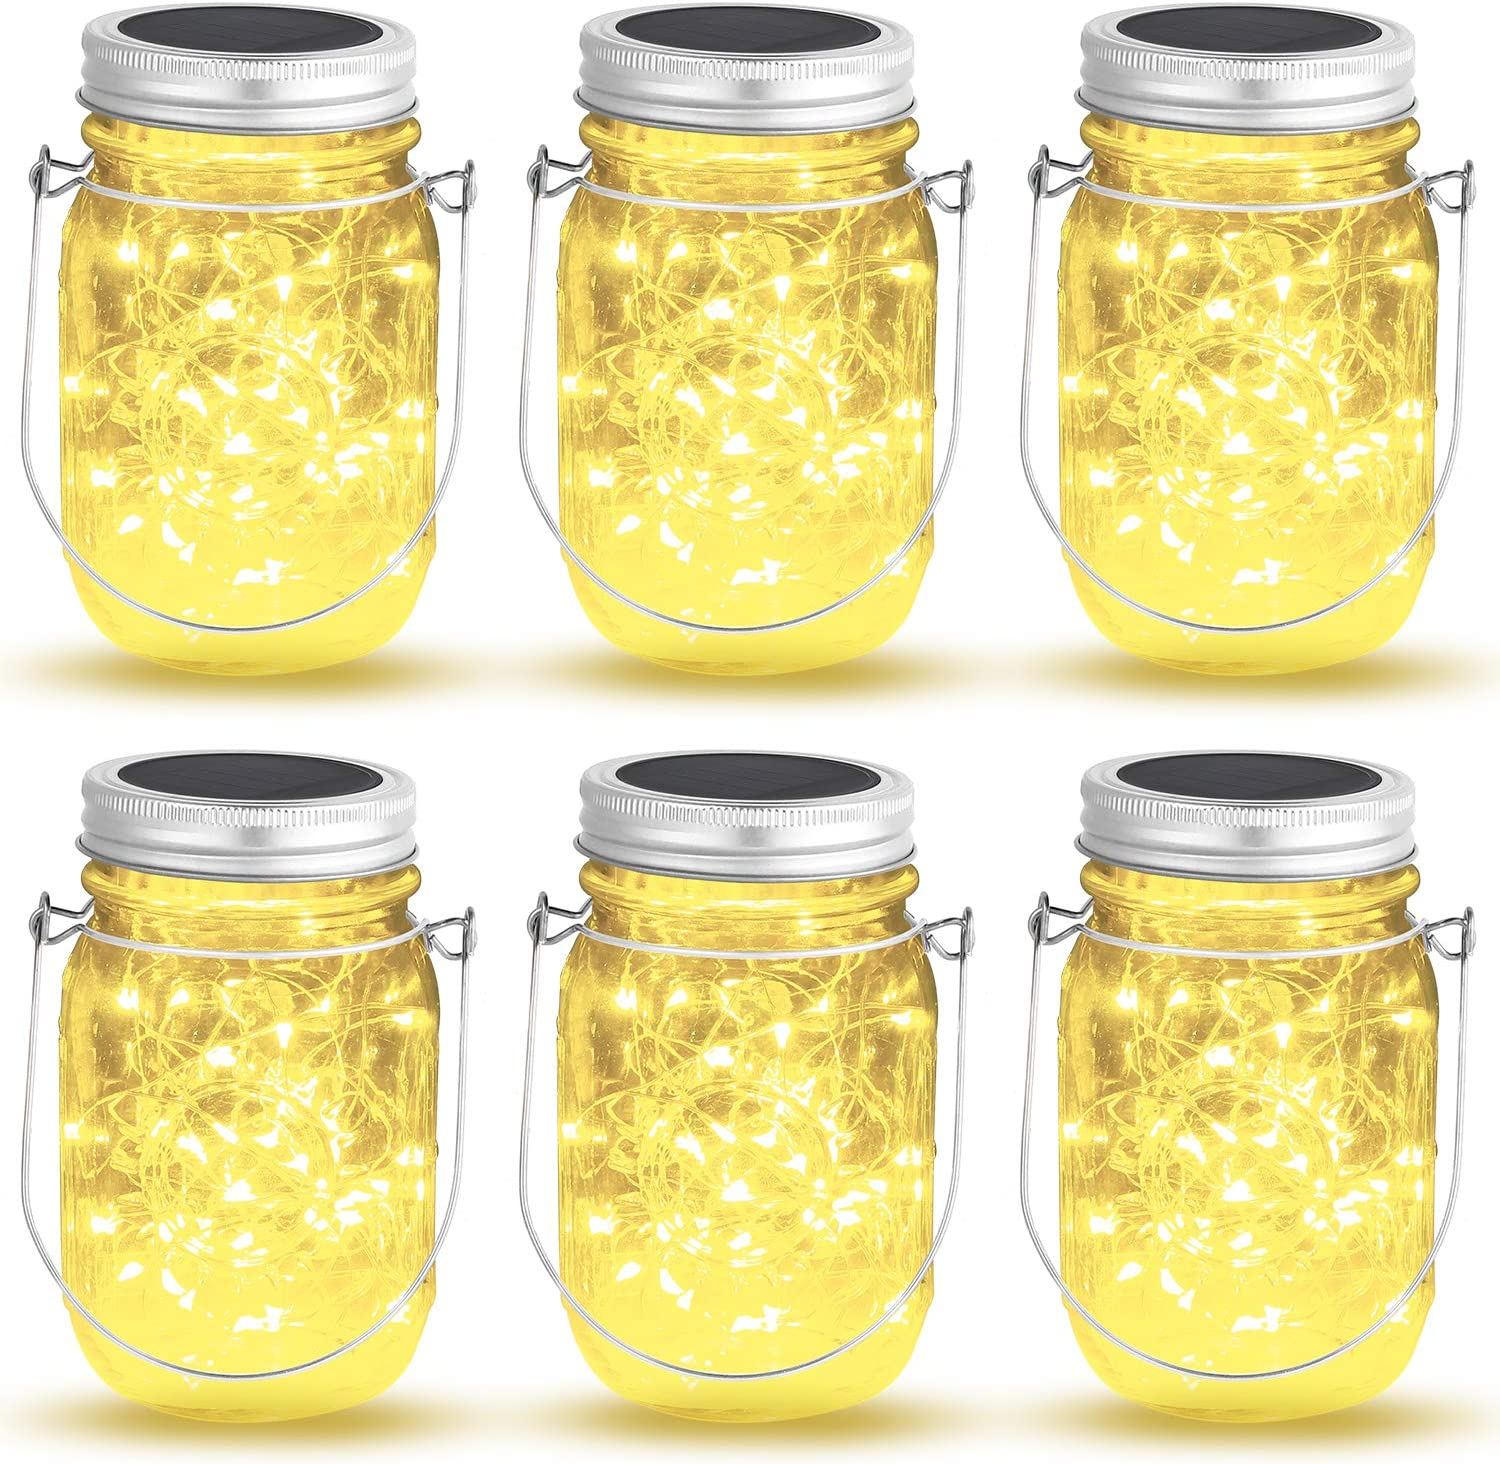 OxyLED 6 Pack Mason Jar Solar Lights, 40 LED Fairy Lights Solar Powered with Jars and Hangers, Waterproof Hanging Solar Lights Outdoor, Decorative Solar Lanterns for Home Garden Patio Party Wedding